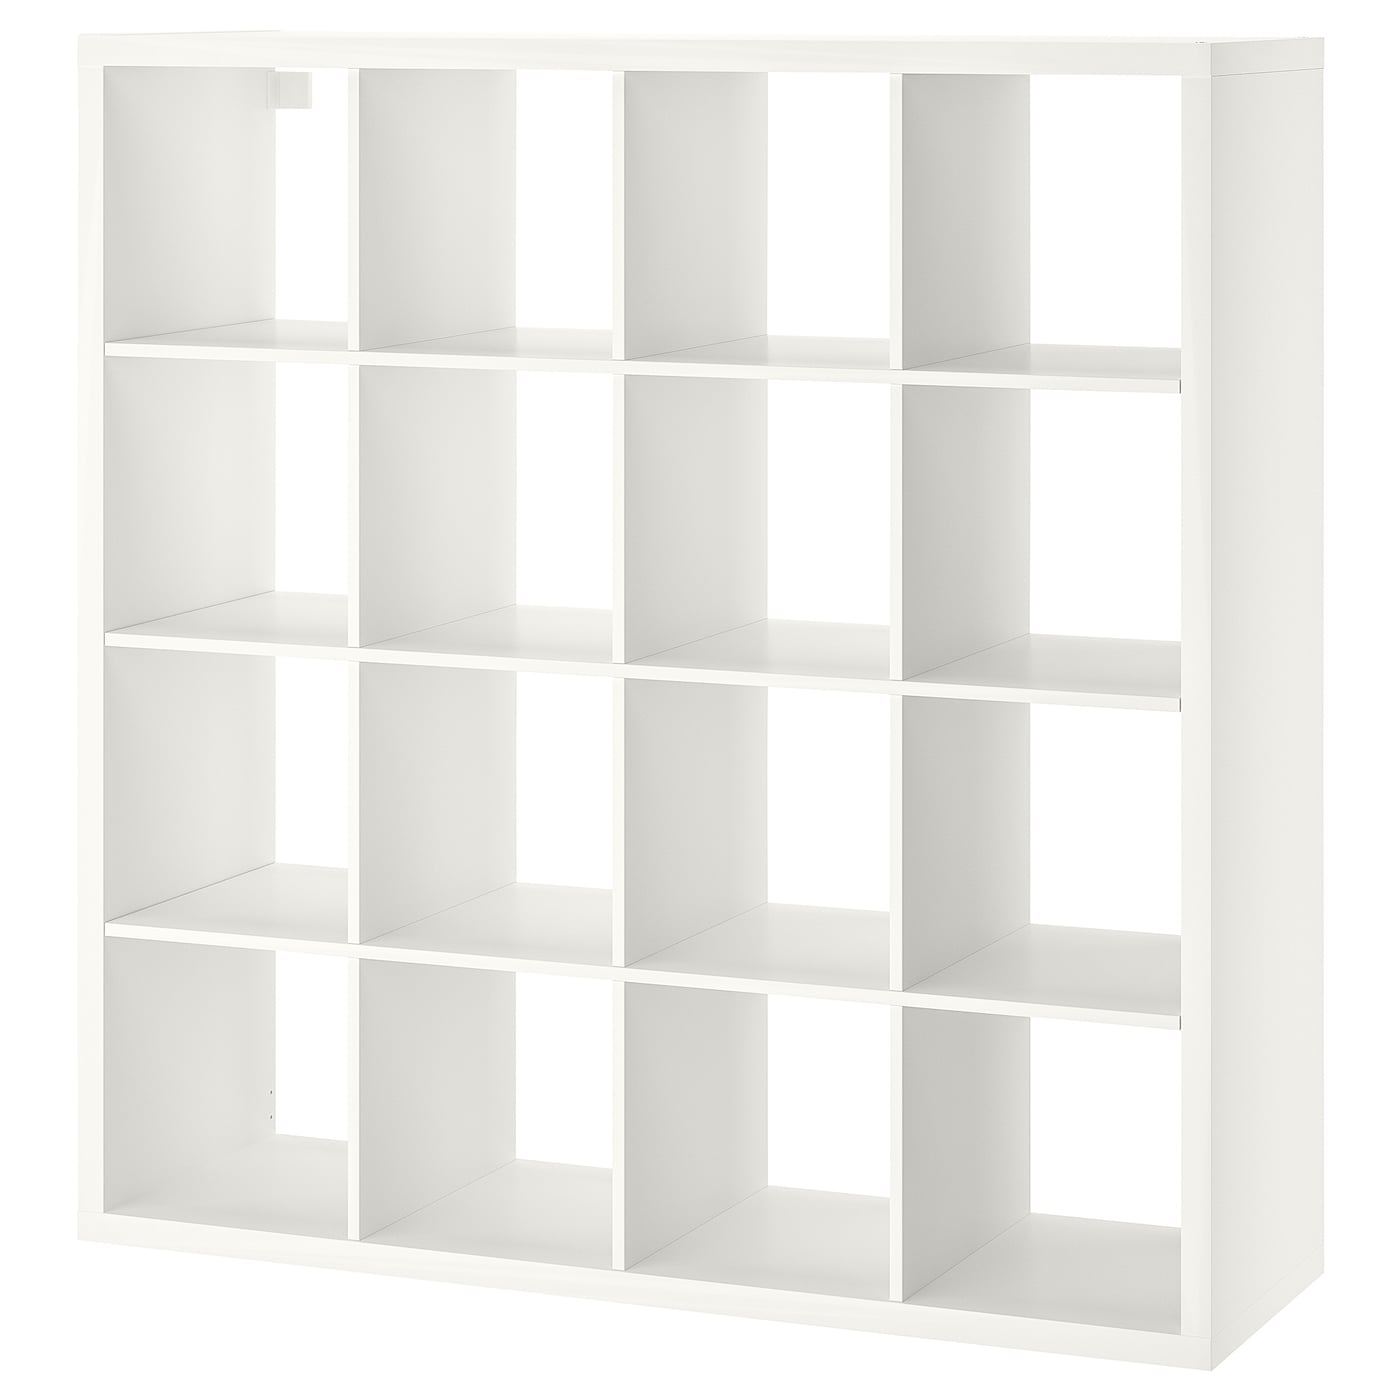 Ikea KALLAX Shelf unit, white57 7/8x57 7/8